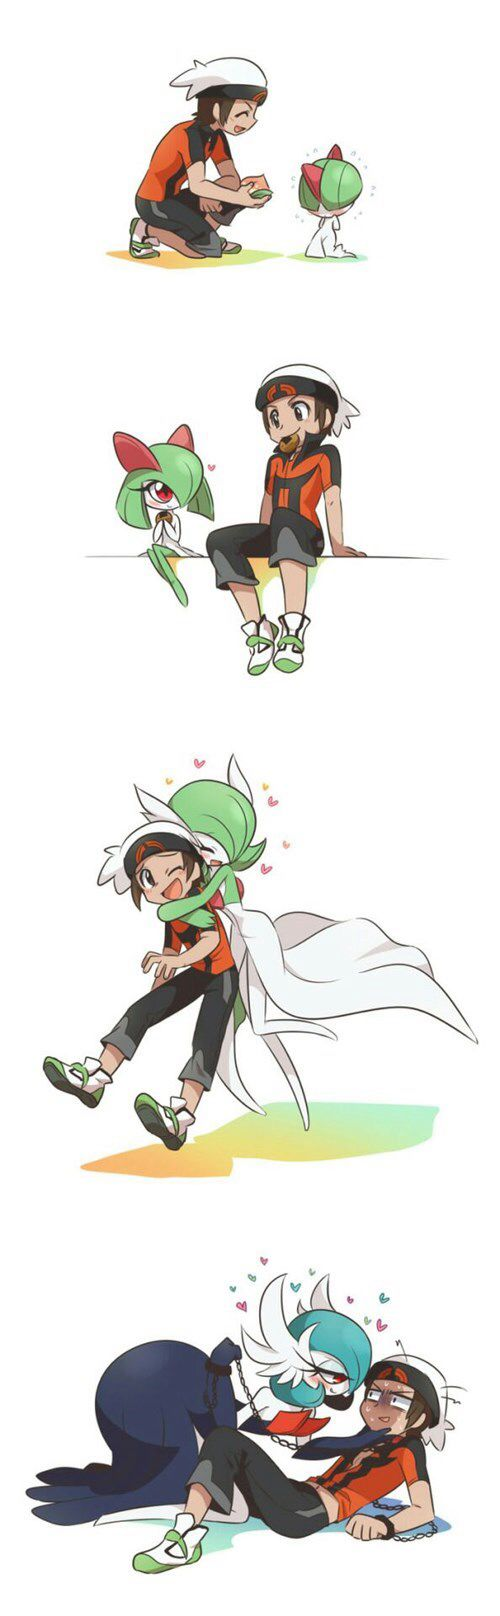 That's What You Get for Training a Naughty Gardevoir ಠ_ಠ http://chzb.gr/1FAeWLx Plot Twist: